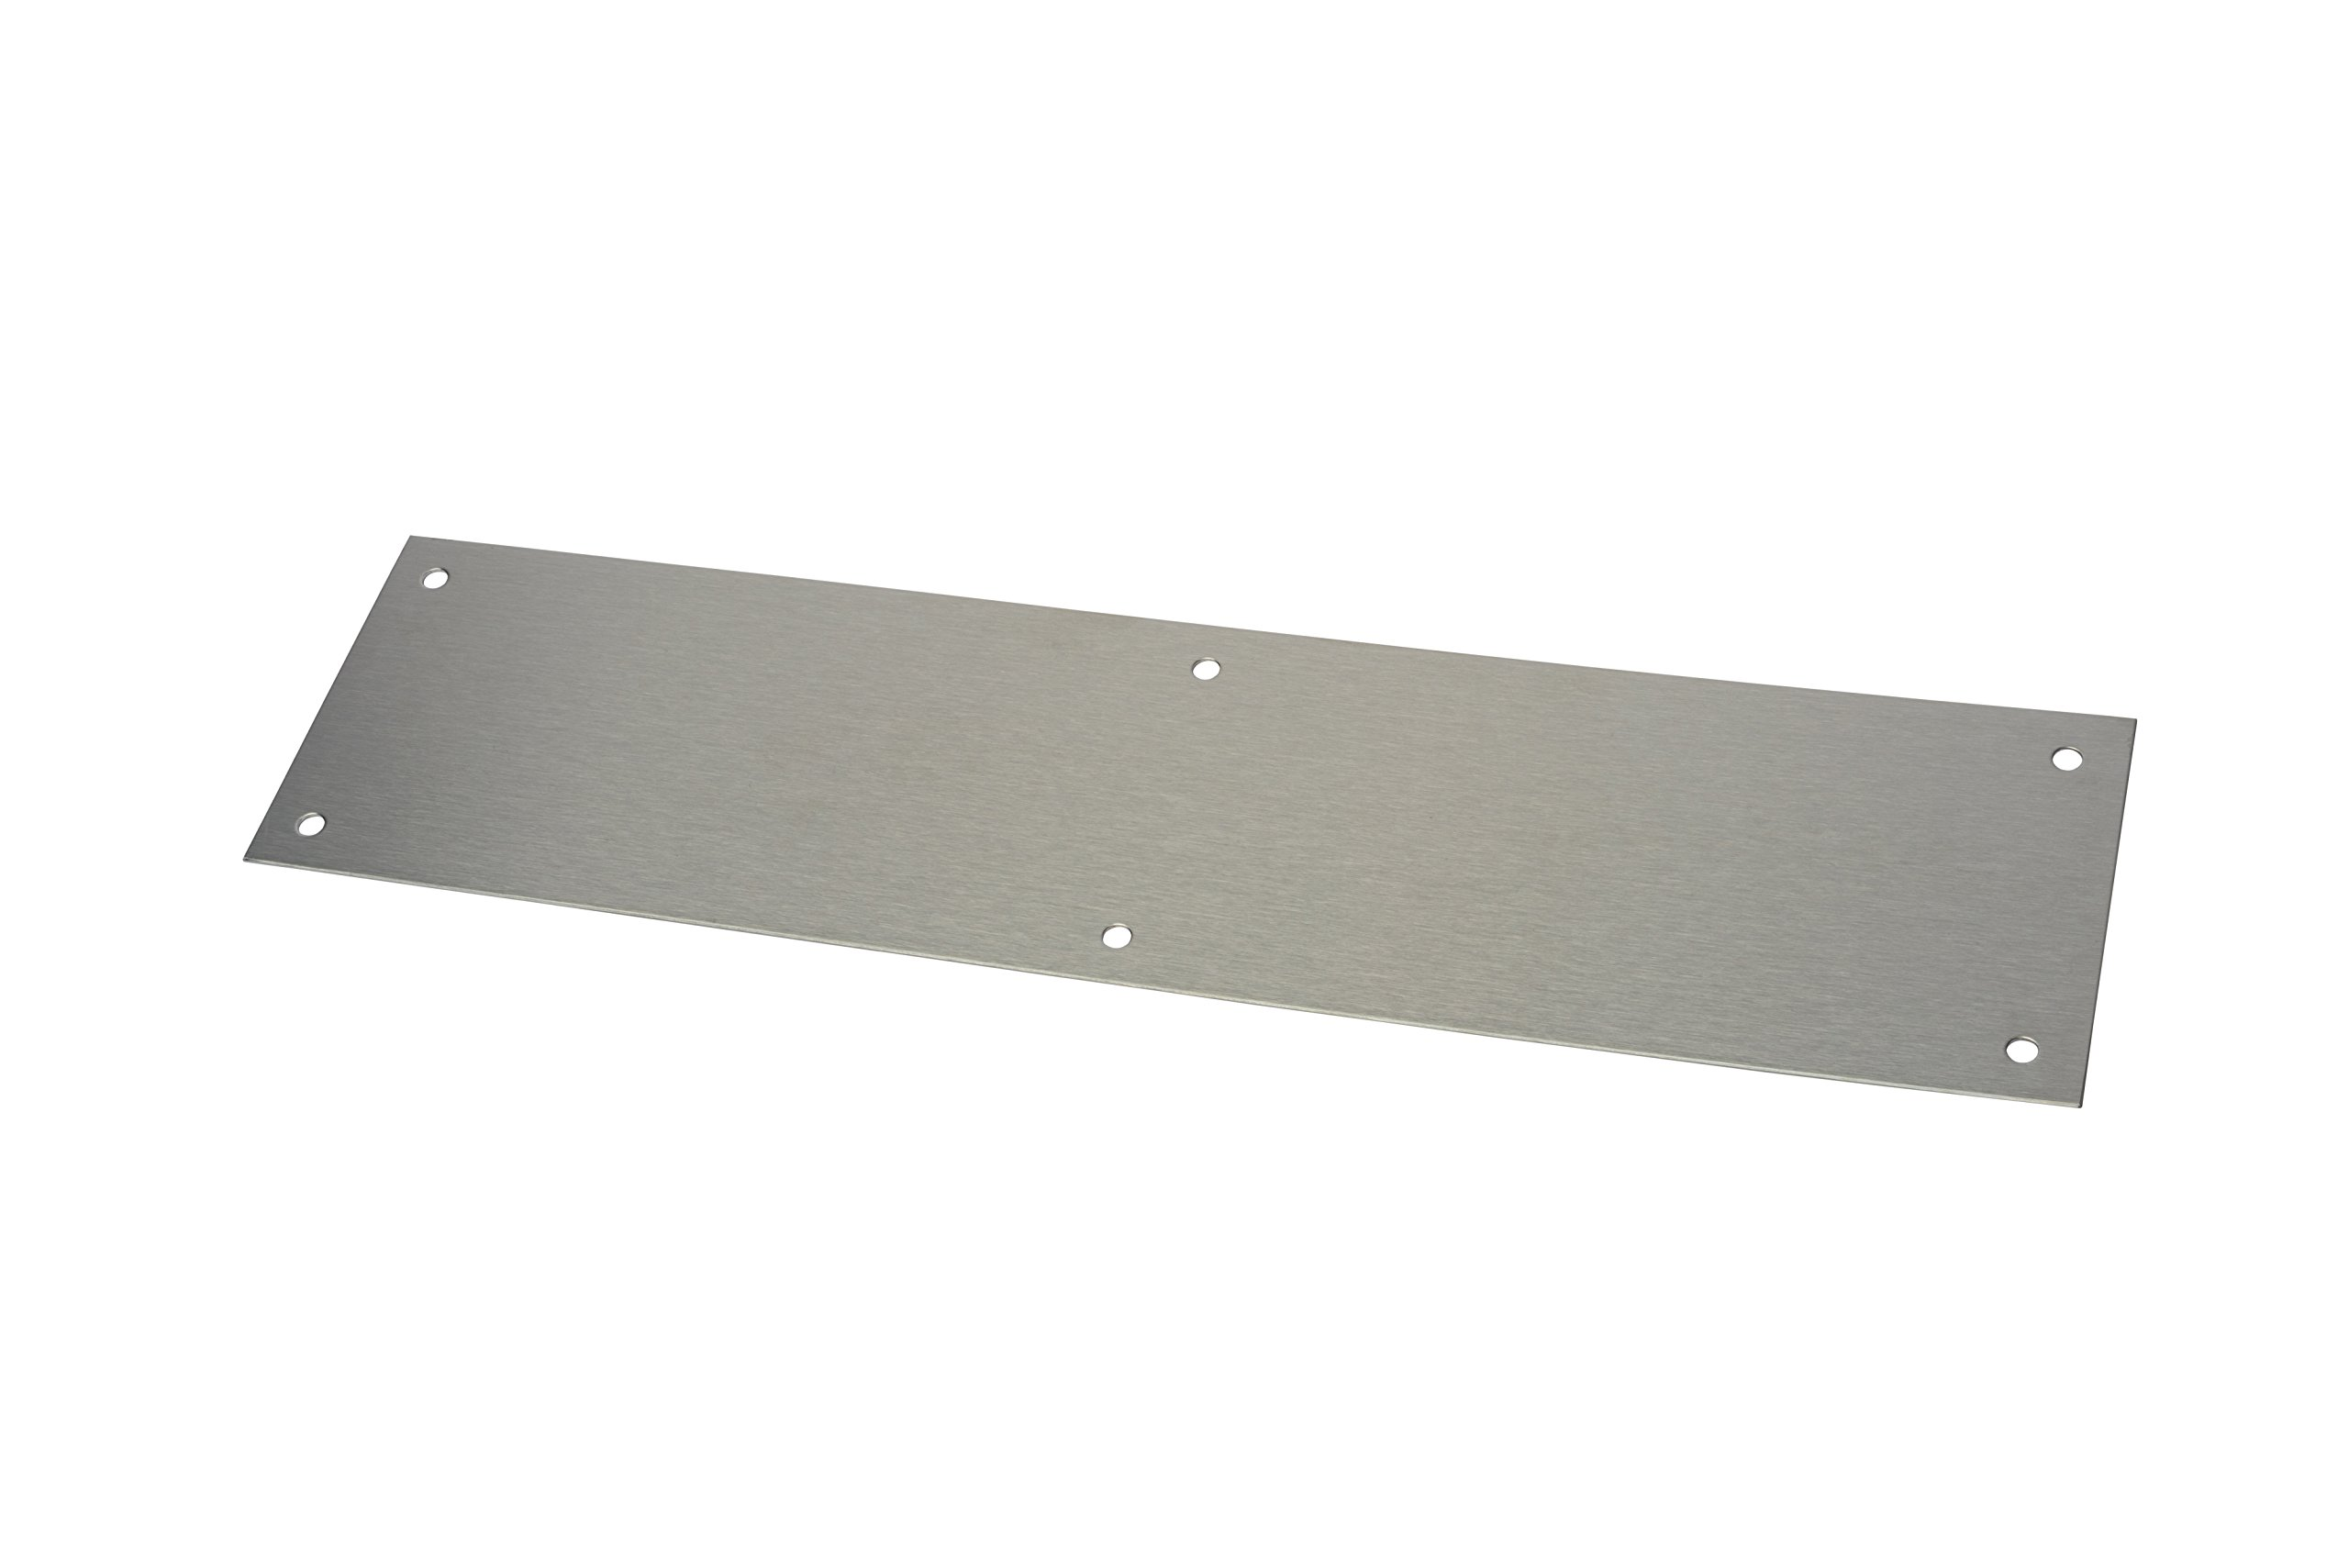 Rockwood 70A.32D Stainless Steel Standard Push Plate, Four Beveled Edges, 12'' Height x 3'' Width x 0.050'' Thick, Satin Finish